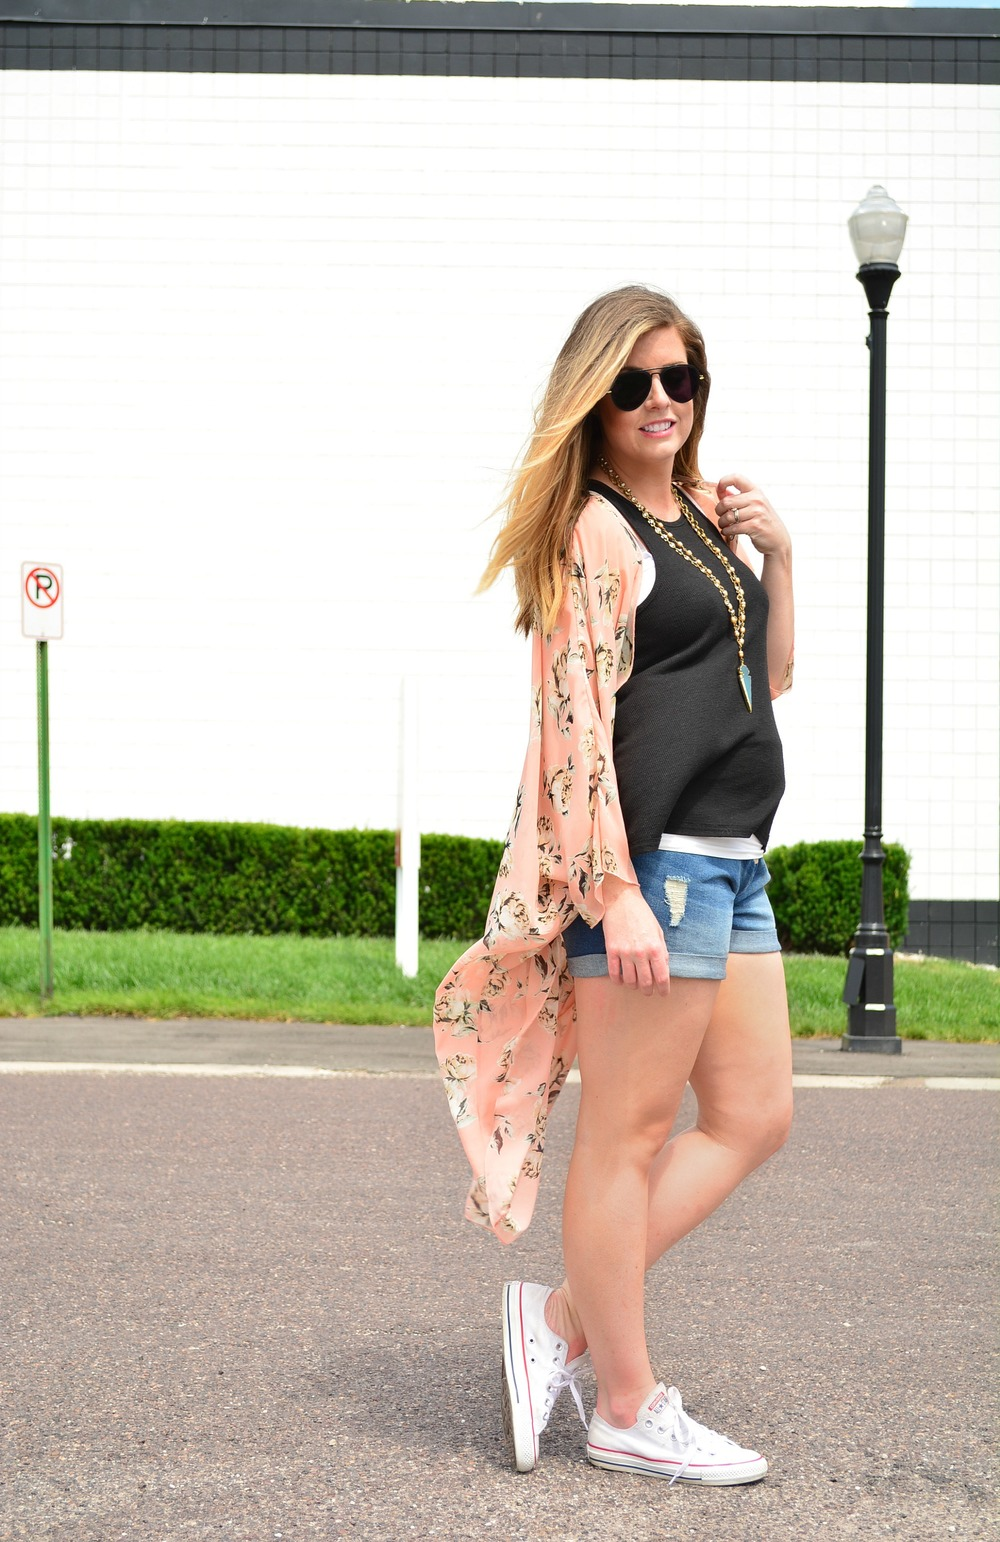 How to look chic and stay cool during pregnancy